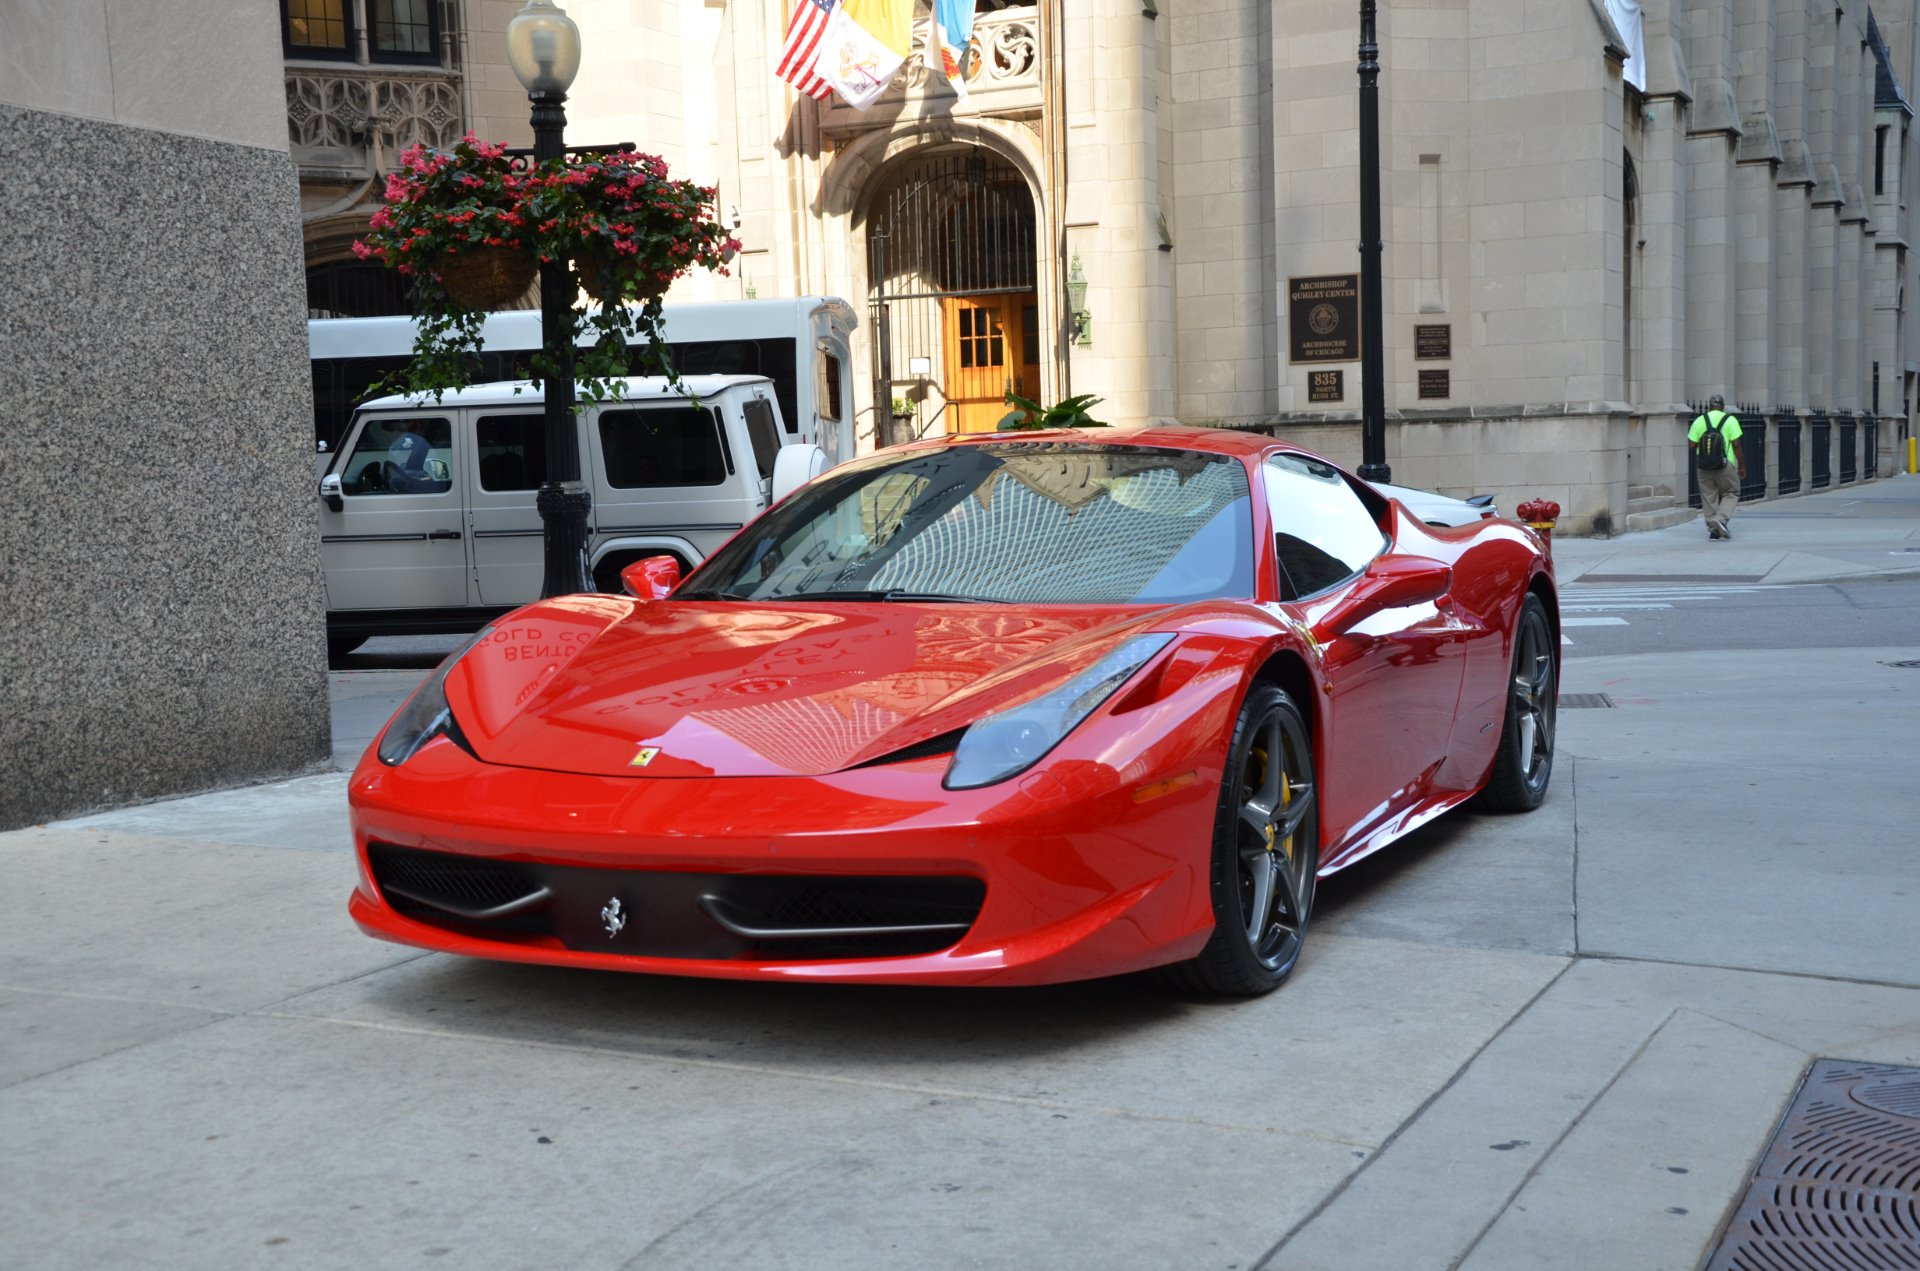 2013 ferrari 458 italia stock r272a for sale near chicago il il ferrari dealer. Black Bedroom Furniture Sets. Home Design Ideas